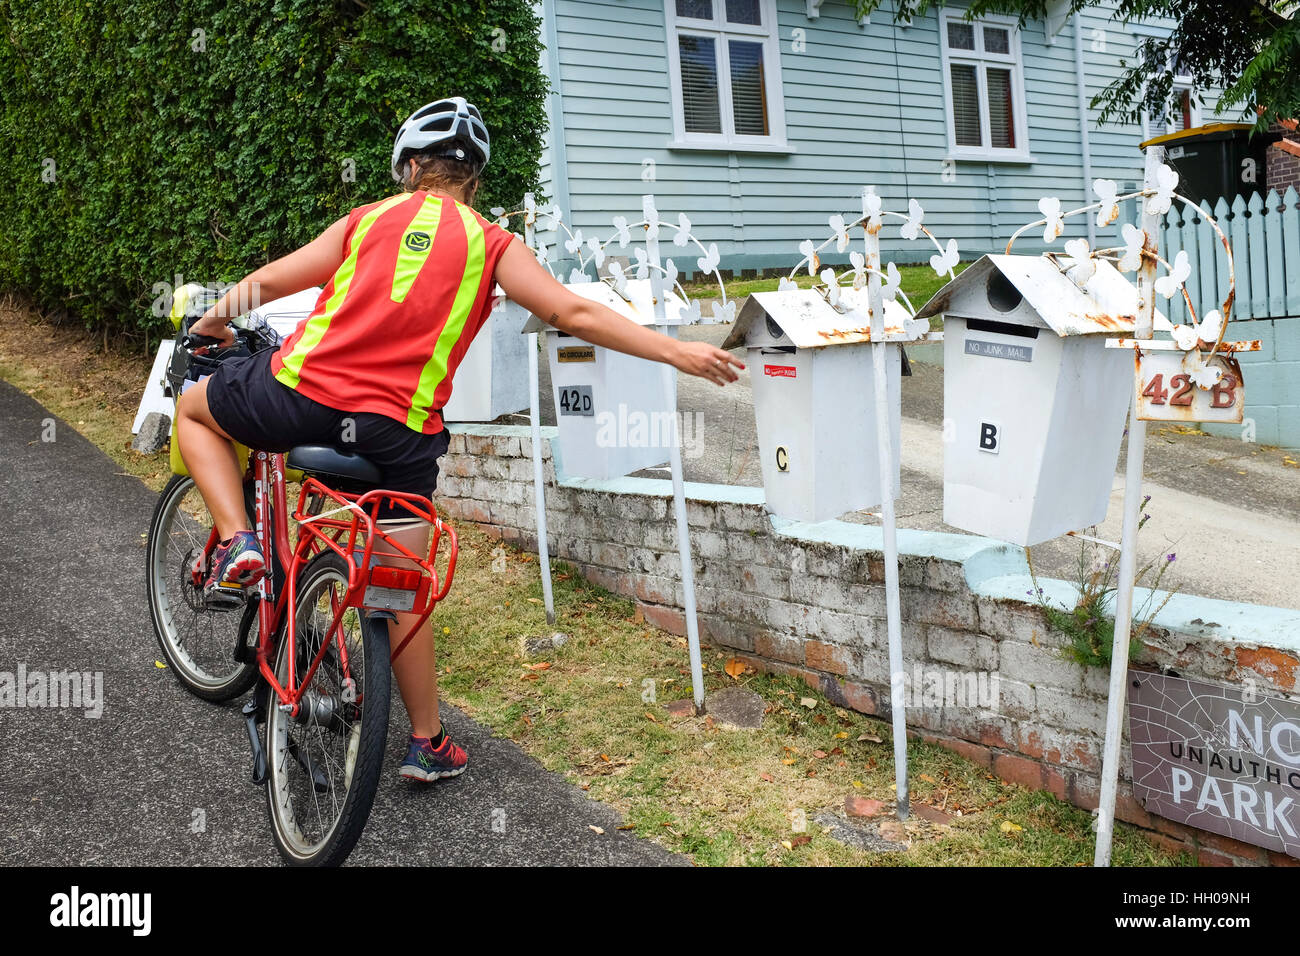 A postal worker in New Zealand delivering letters. - Stock Image